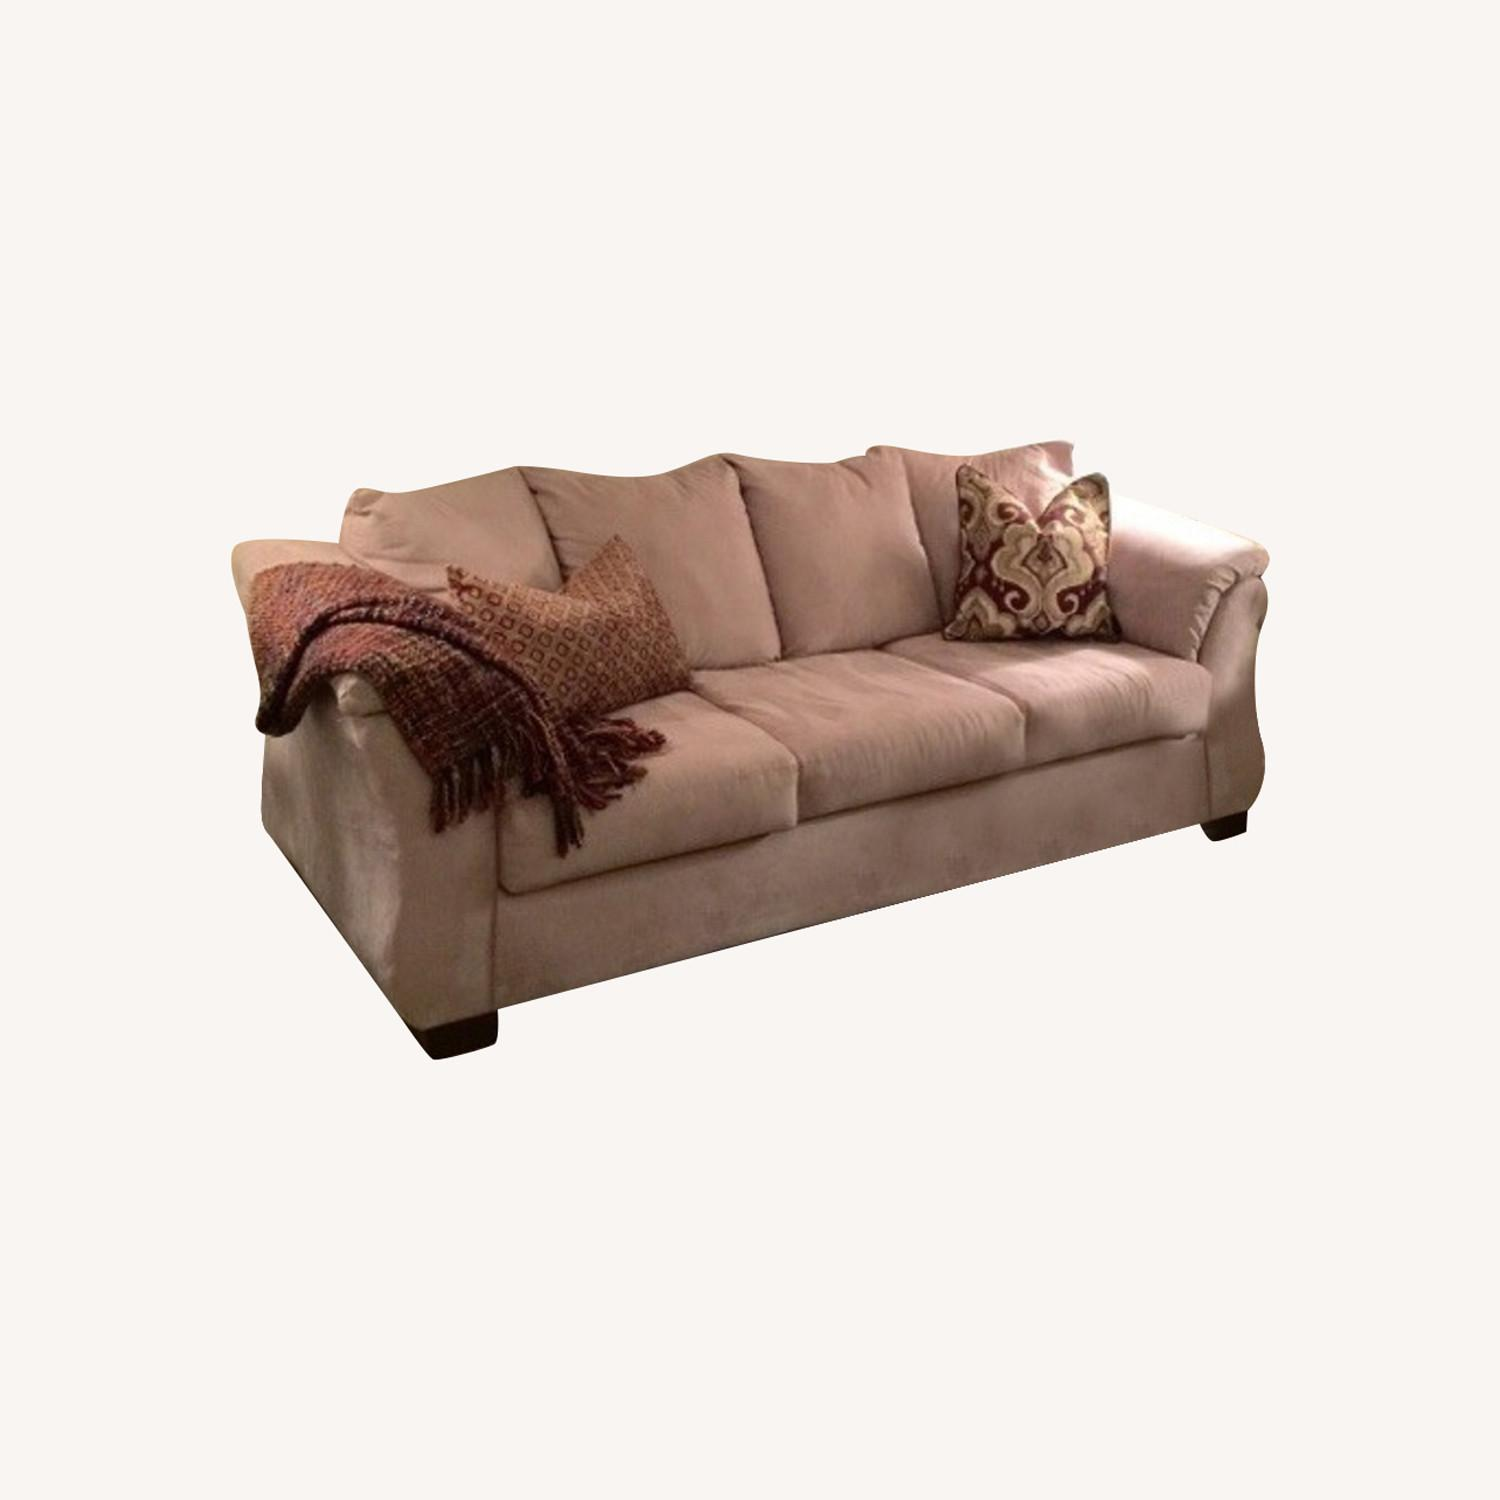 Beautiful Elegant Three Seater Comfortable Couch - image-0